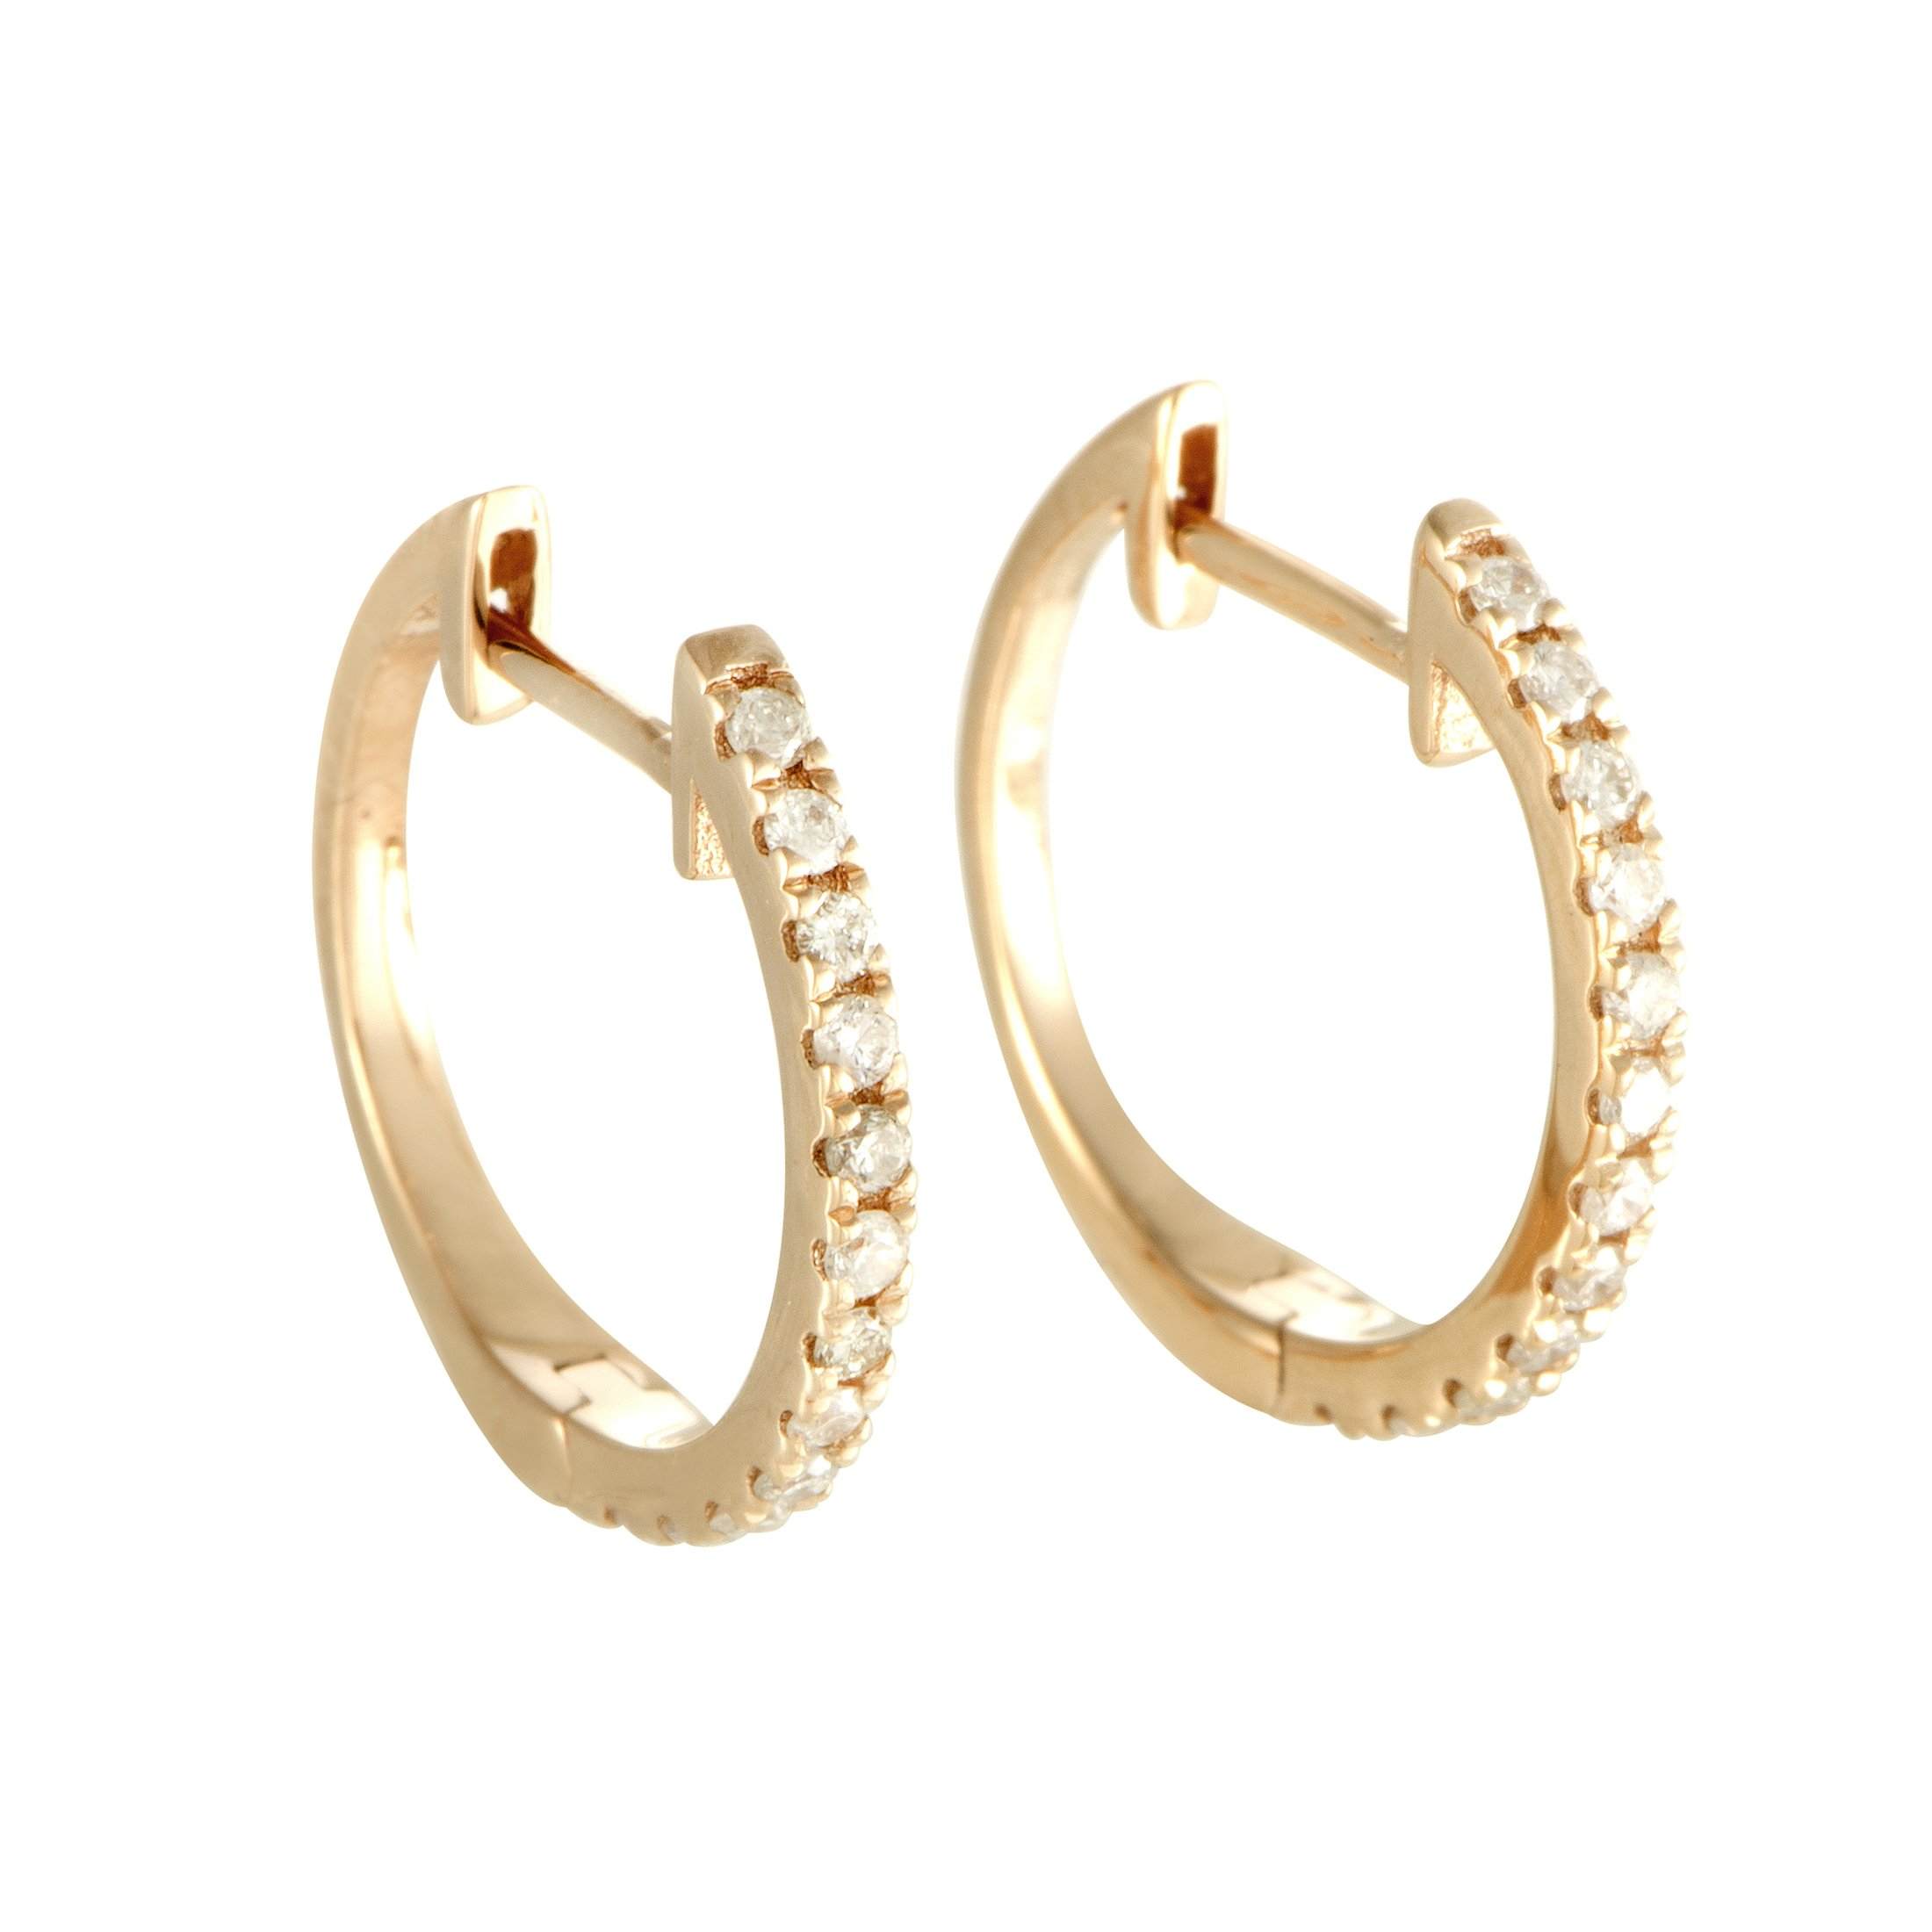 Stunning 0.22 Carats (ctw) Diamond Hoop Earrings in 14K Yellow Gold; 1/4 CT Brilliant White Diamonds (G Color, SI1-SI2 Clarity) in 0.5'' Hoops (yellow-gold, 0.20)